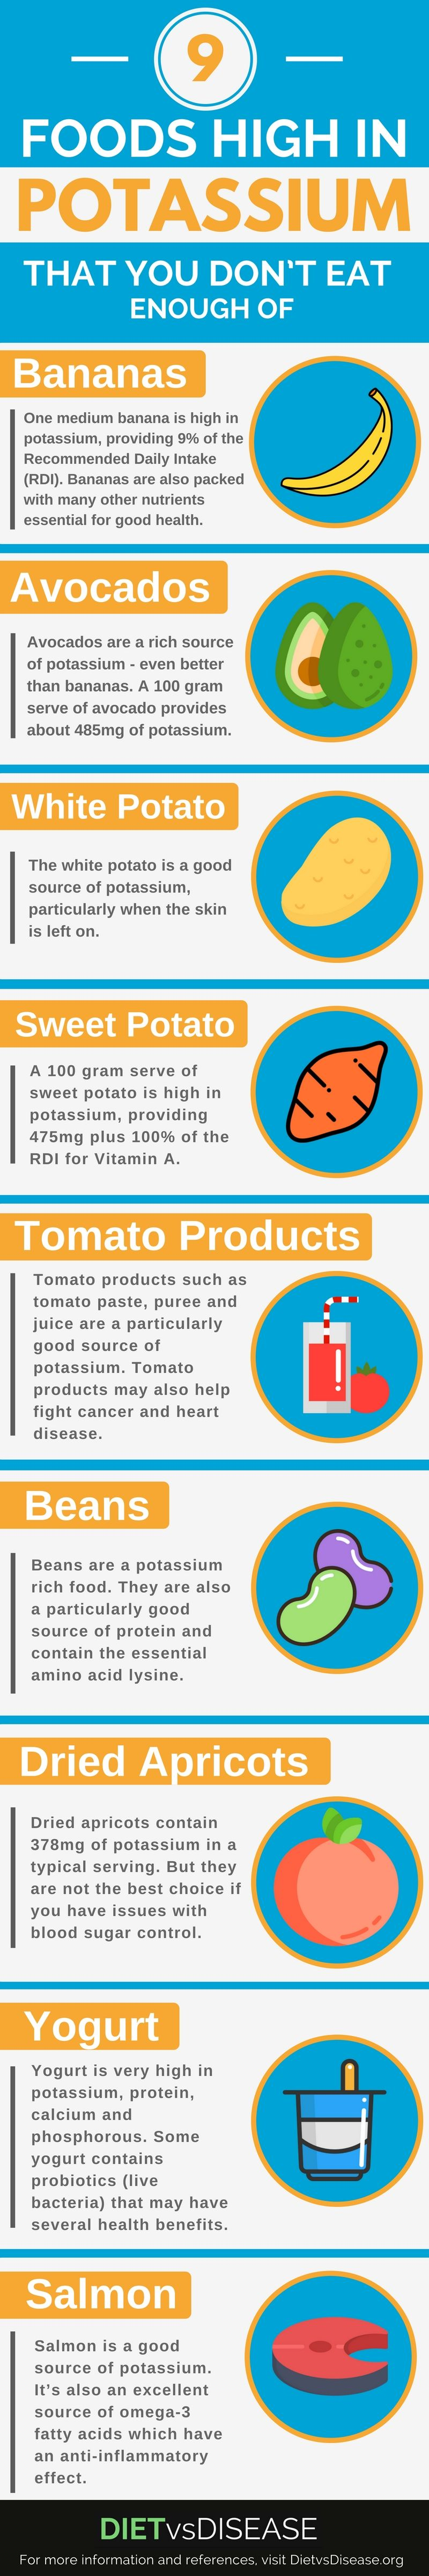 Foods High In Potassium That You DonT Eat Enough Of  High